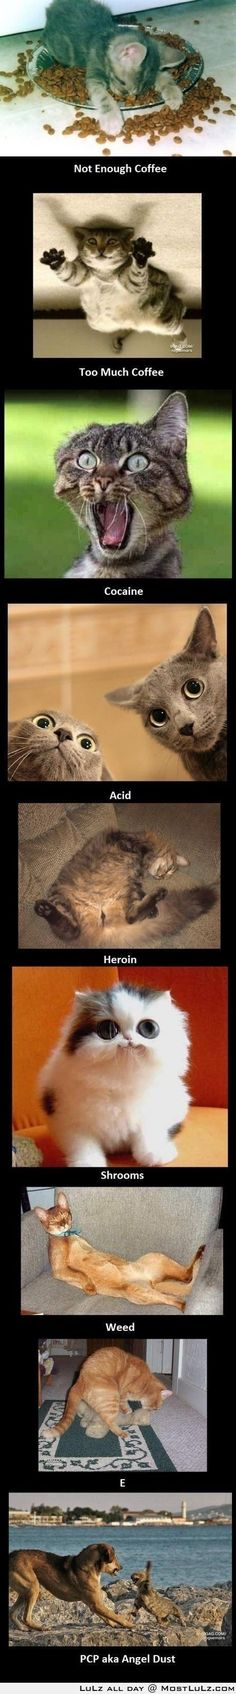 Haha! Kitties!